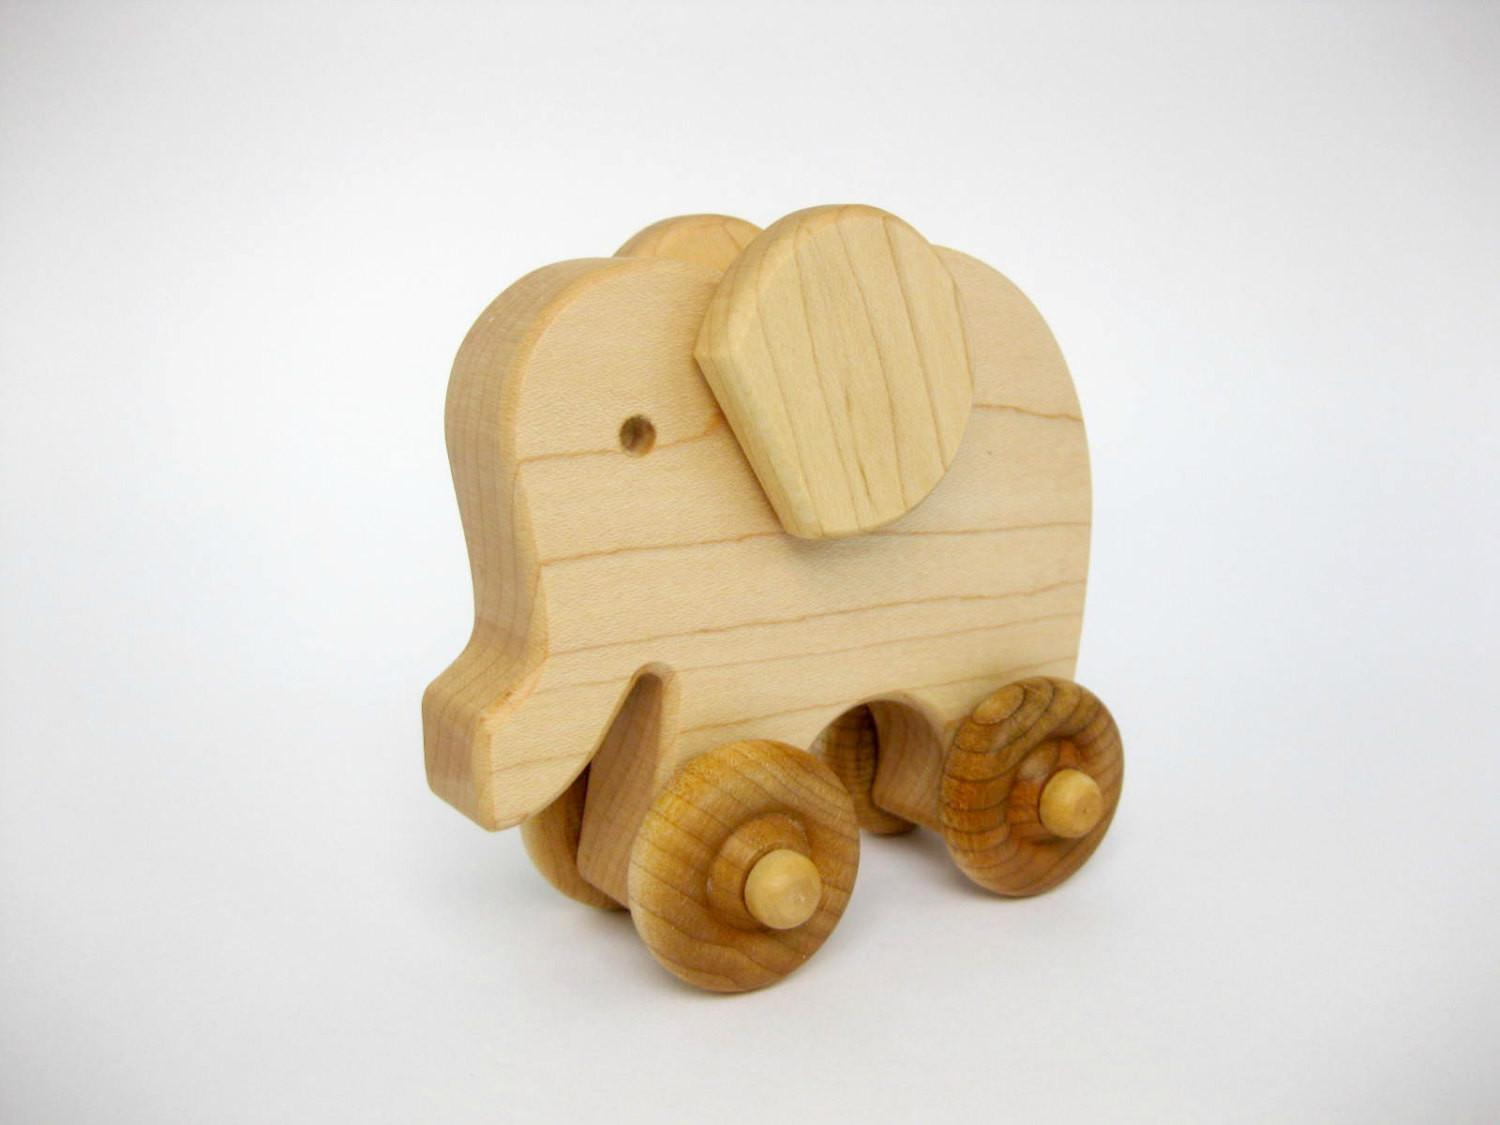 Wooden Toy Elephant Push Natural Wood